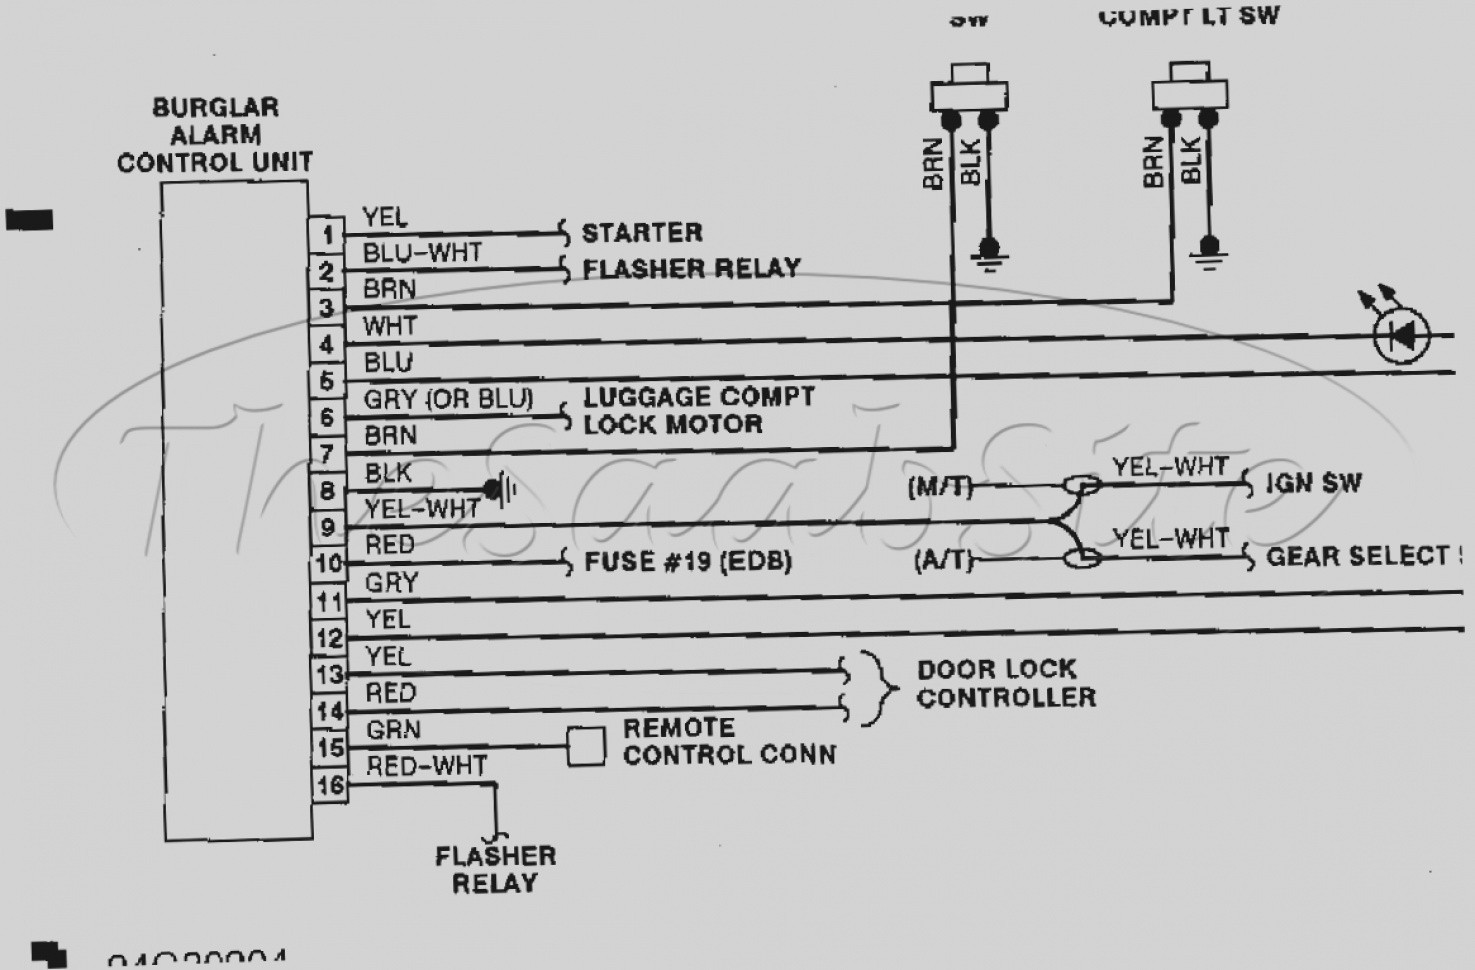 Wiring Diagram Whelen Ulf44